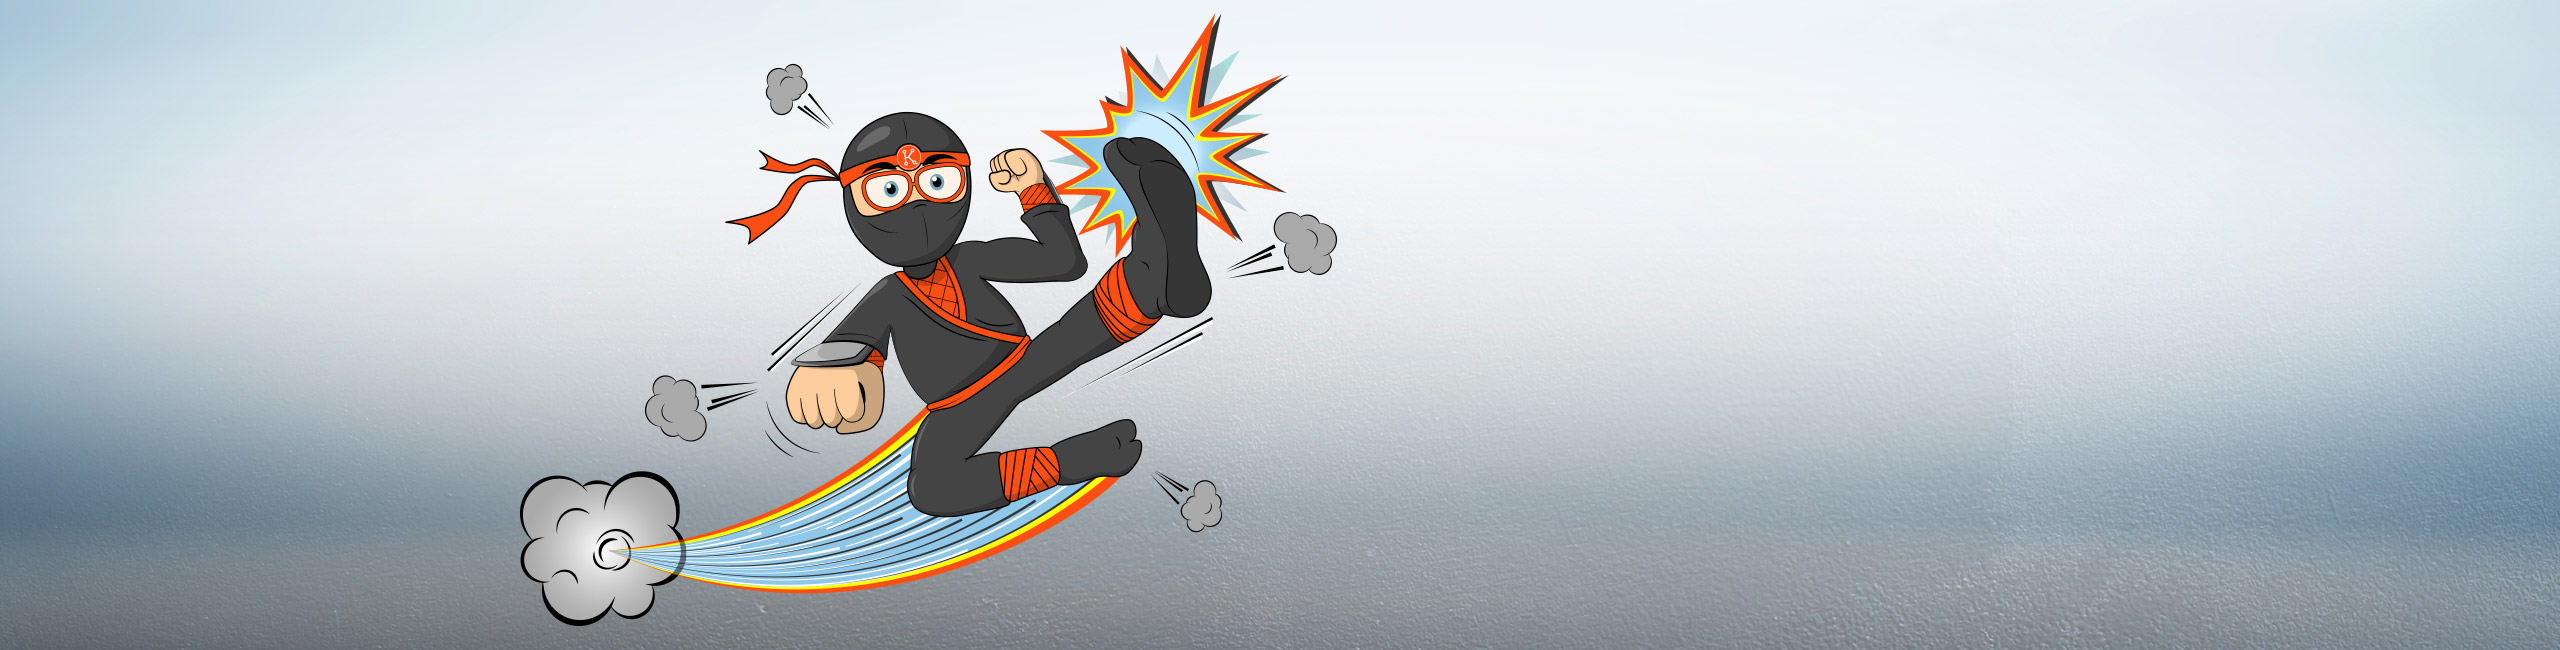 Become an IT Ninja with KACE and find your path to endpoint enlightenment. MX